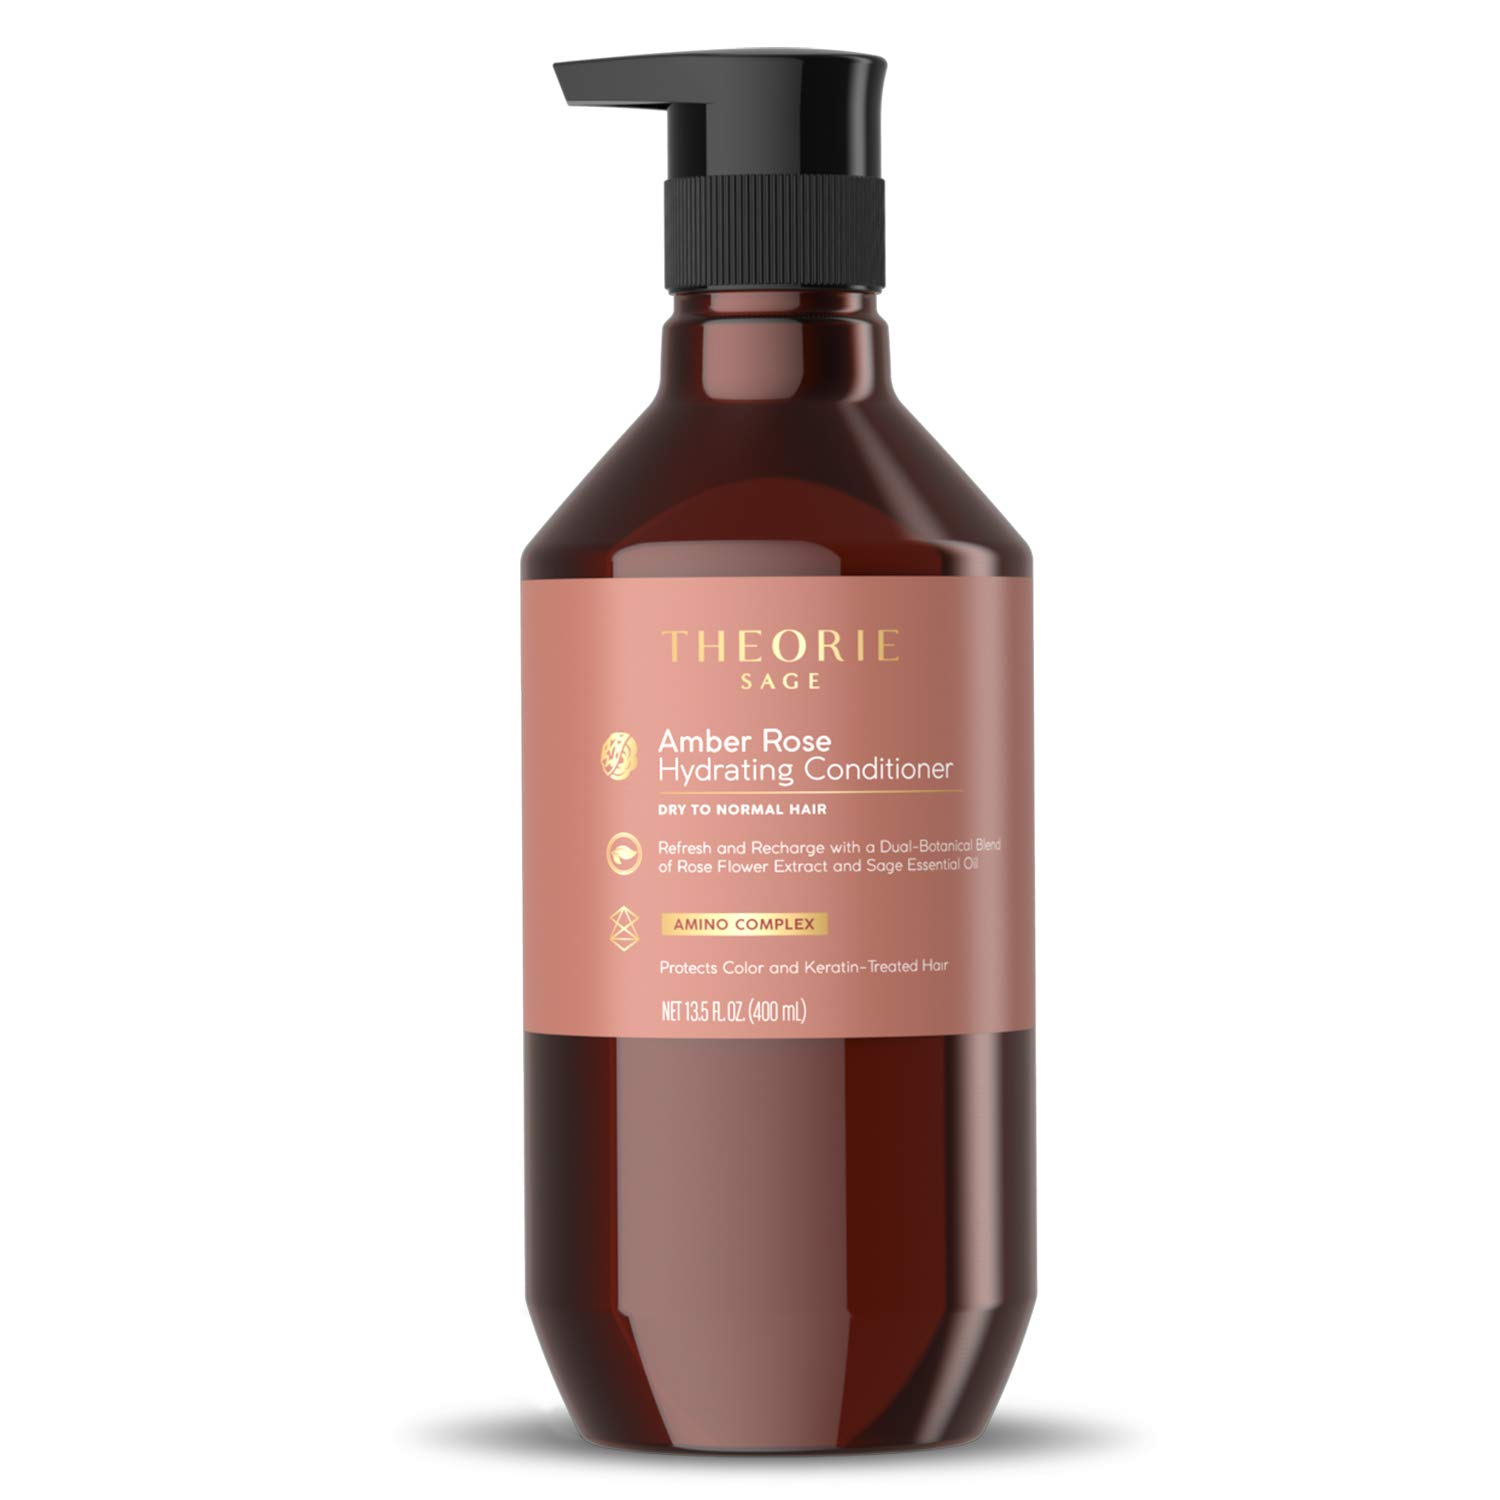 Theorie: Sage - Amber Rose - Hydrating Conditioner | Daily Refresh & Recharging For Dry to Normal Hair | Protects Color & Keratin Treated Hair, 400mL